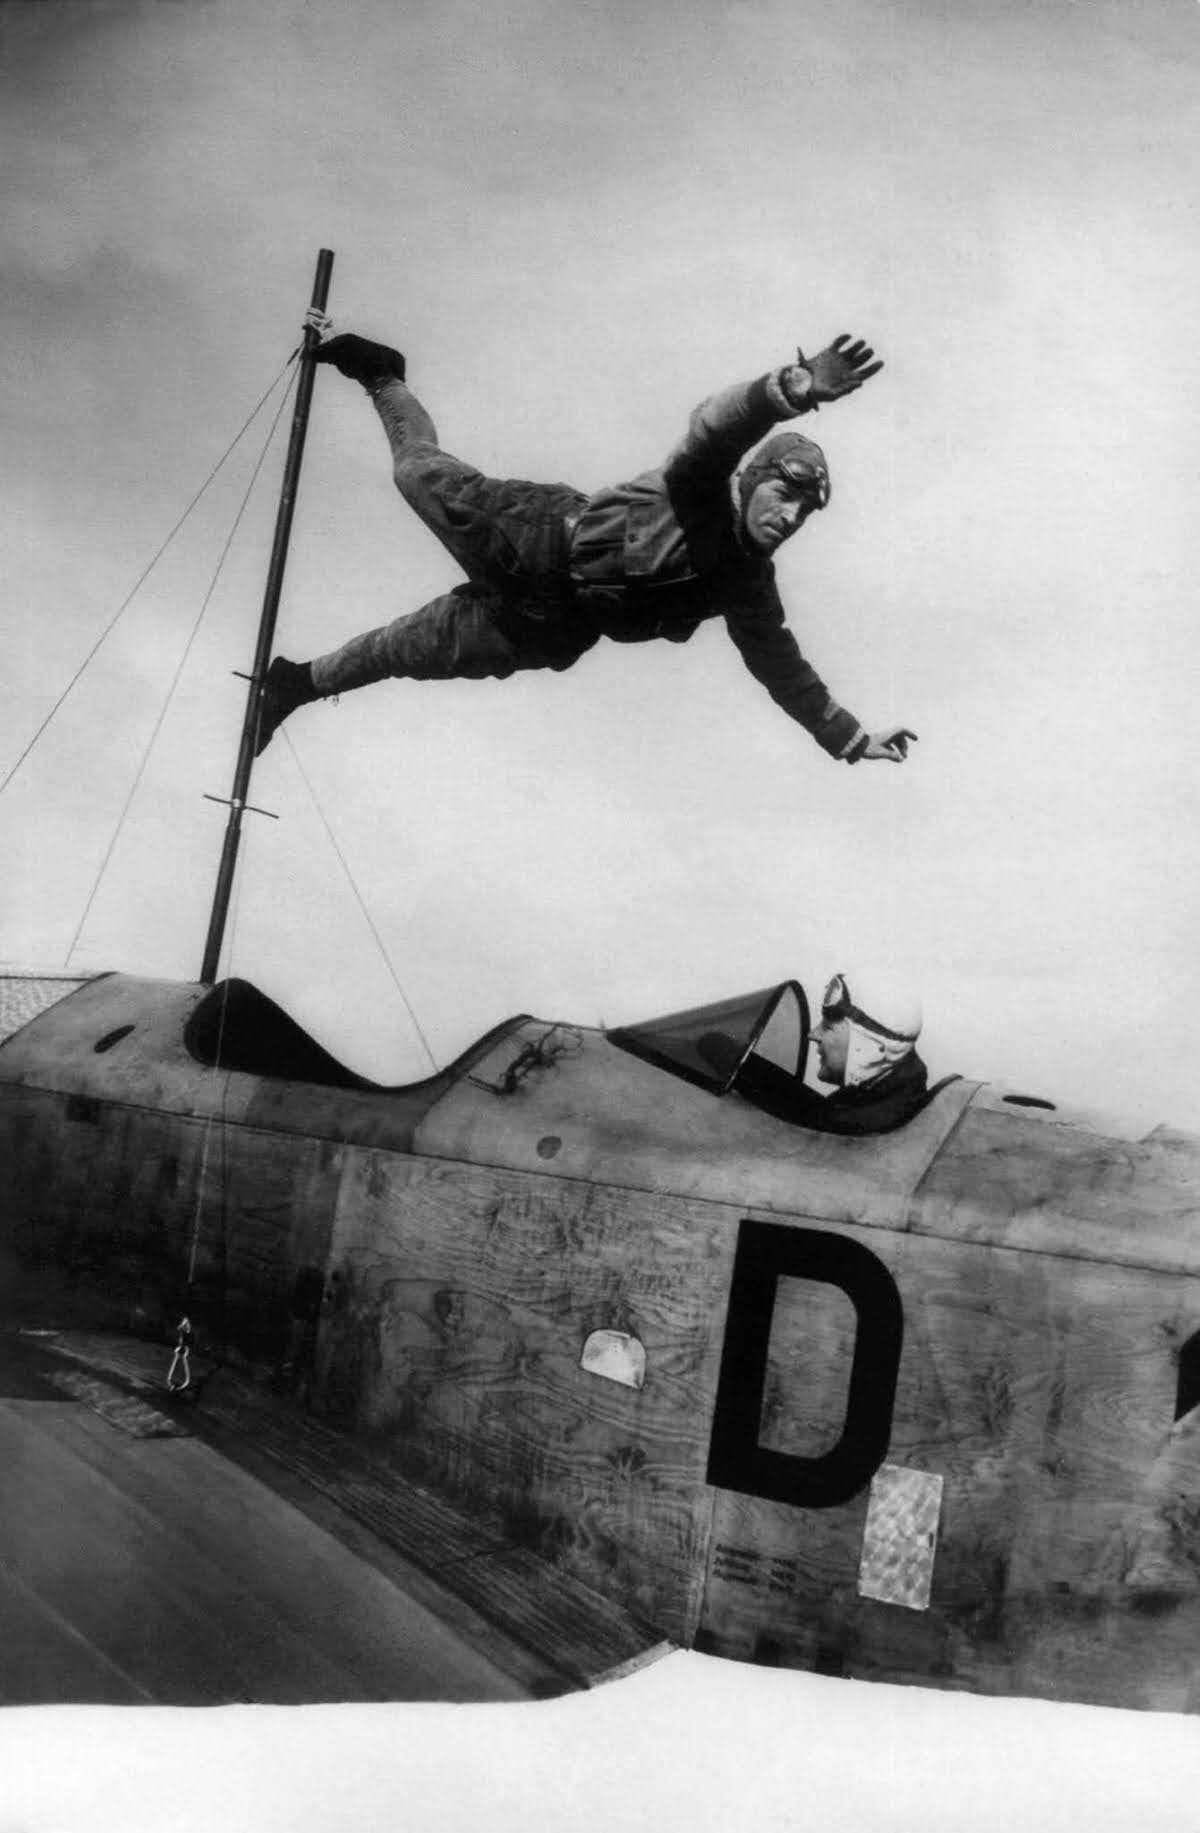 Richard Schindler practices a trick on a Klemp plane piloted by Richard Perlia, 1927.